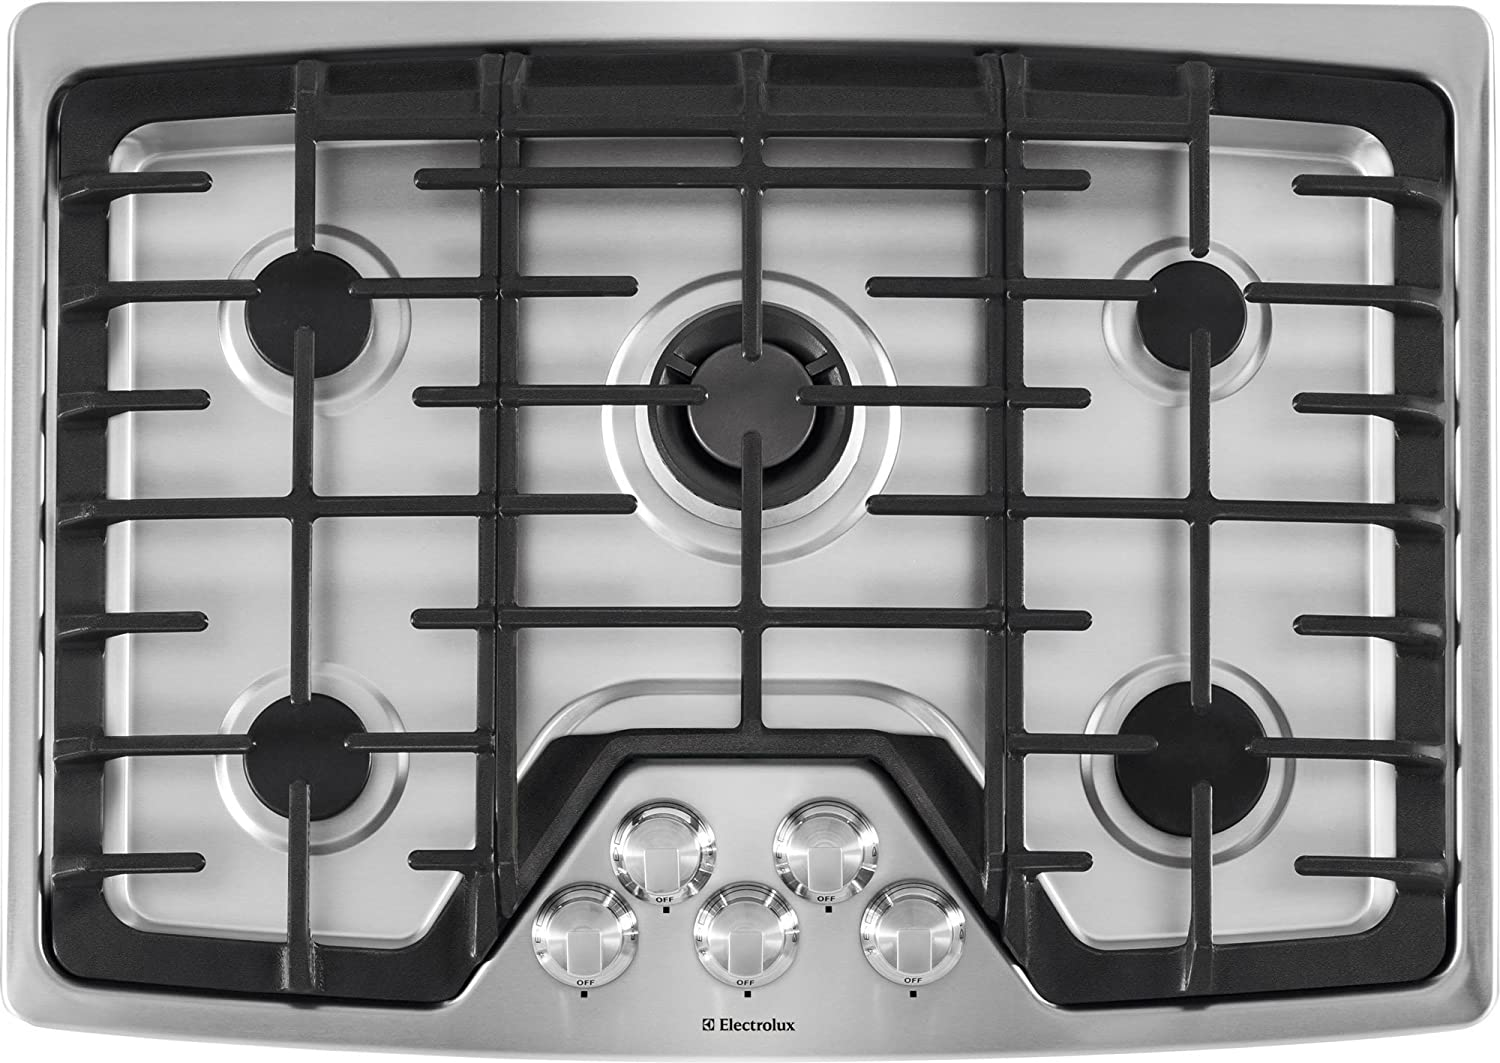 amazoncom electrolux ew30gc60ps builtin gas cooktop 30inch stainless steel appliances